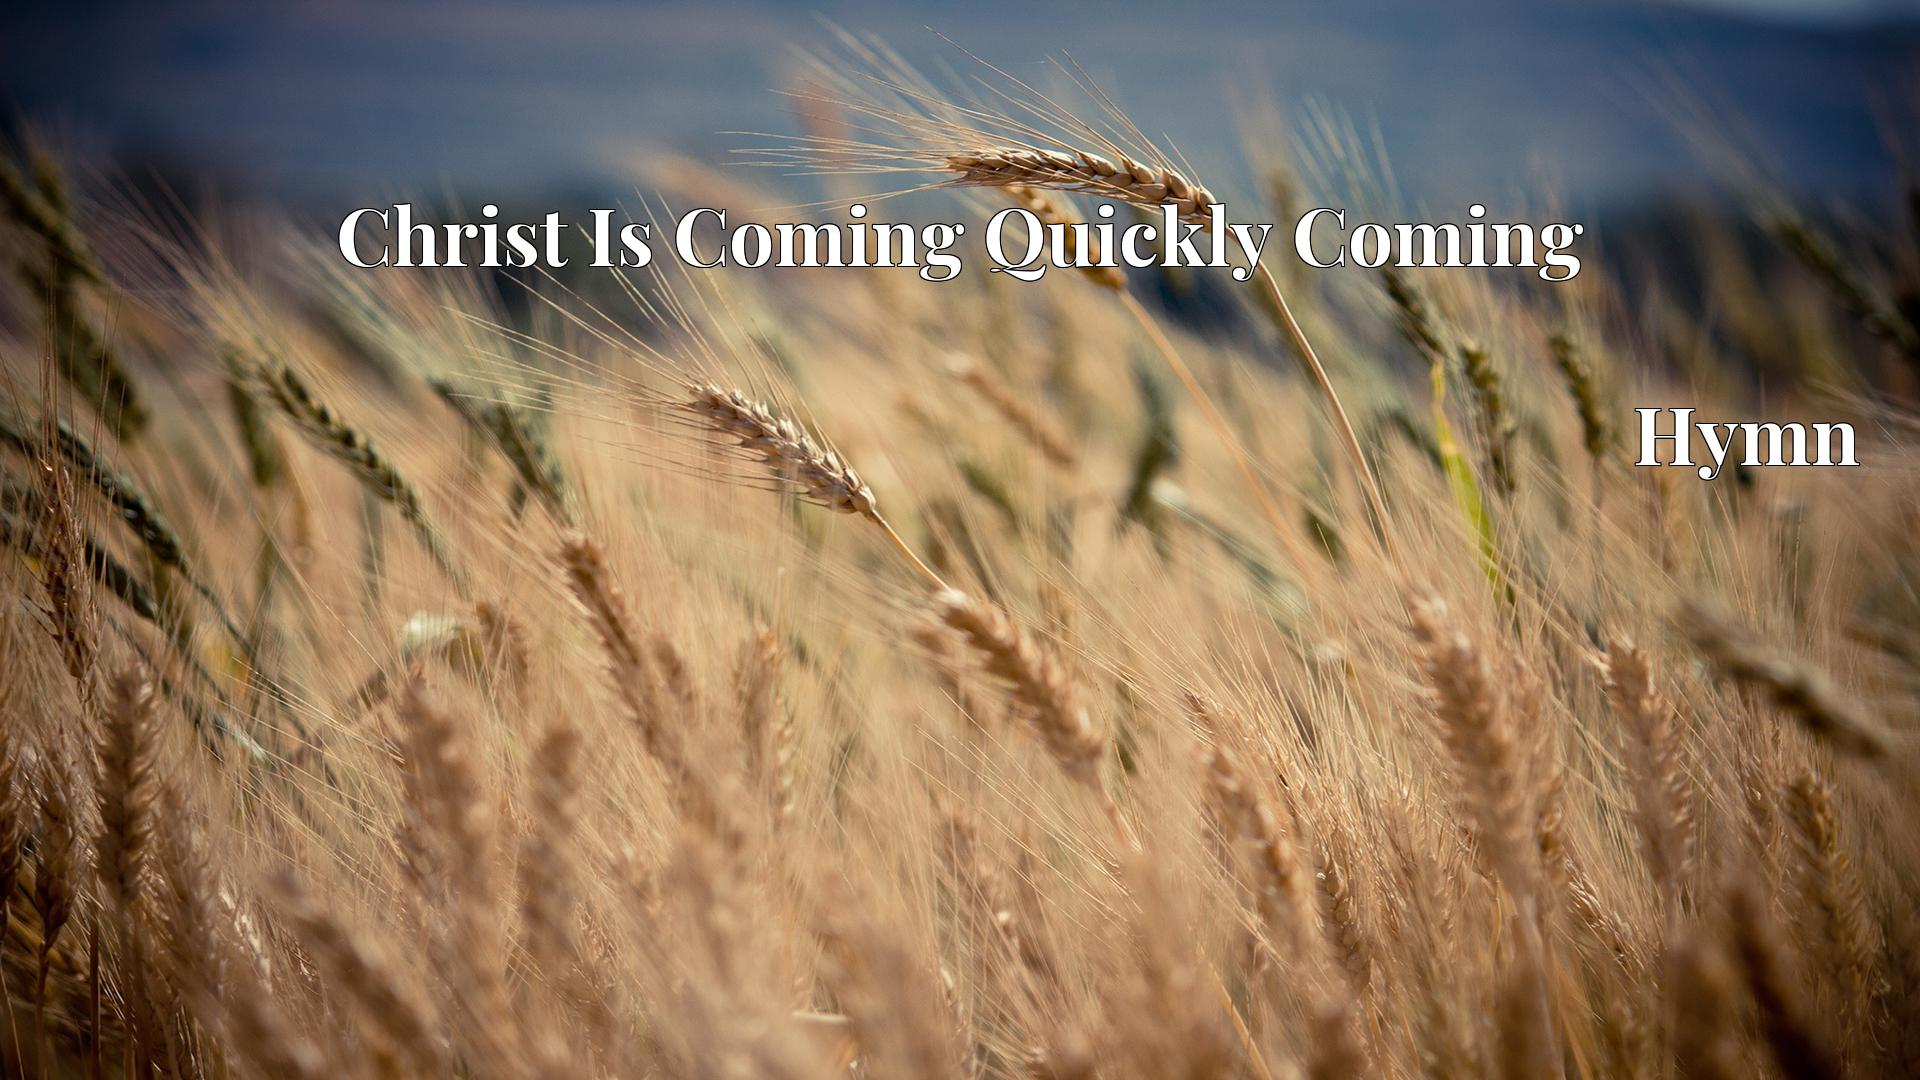 Christ Is Coming Quickly Coming - Hymn